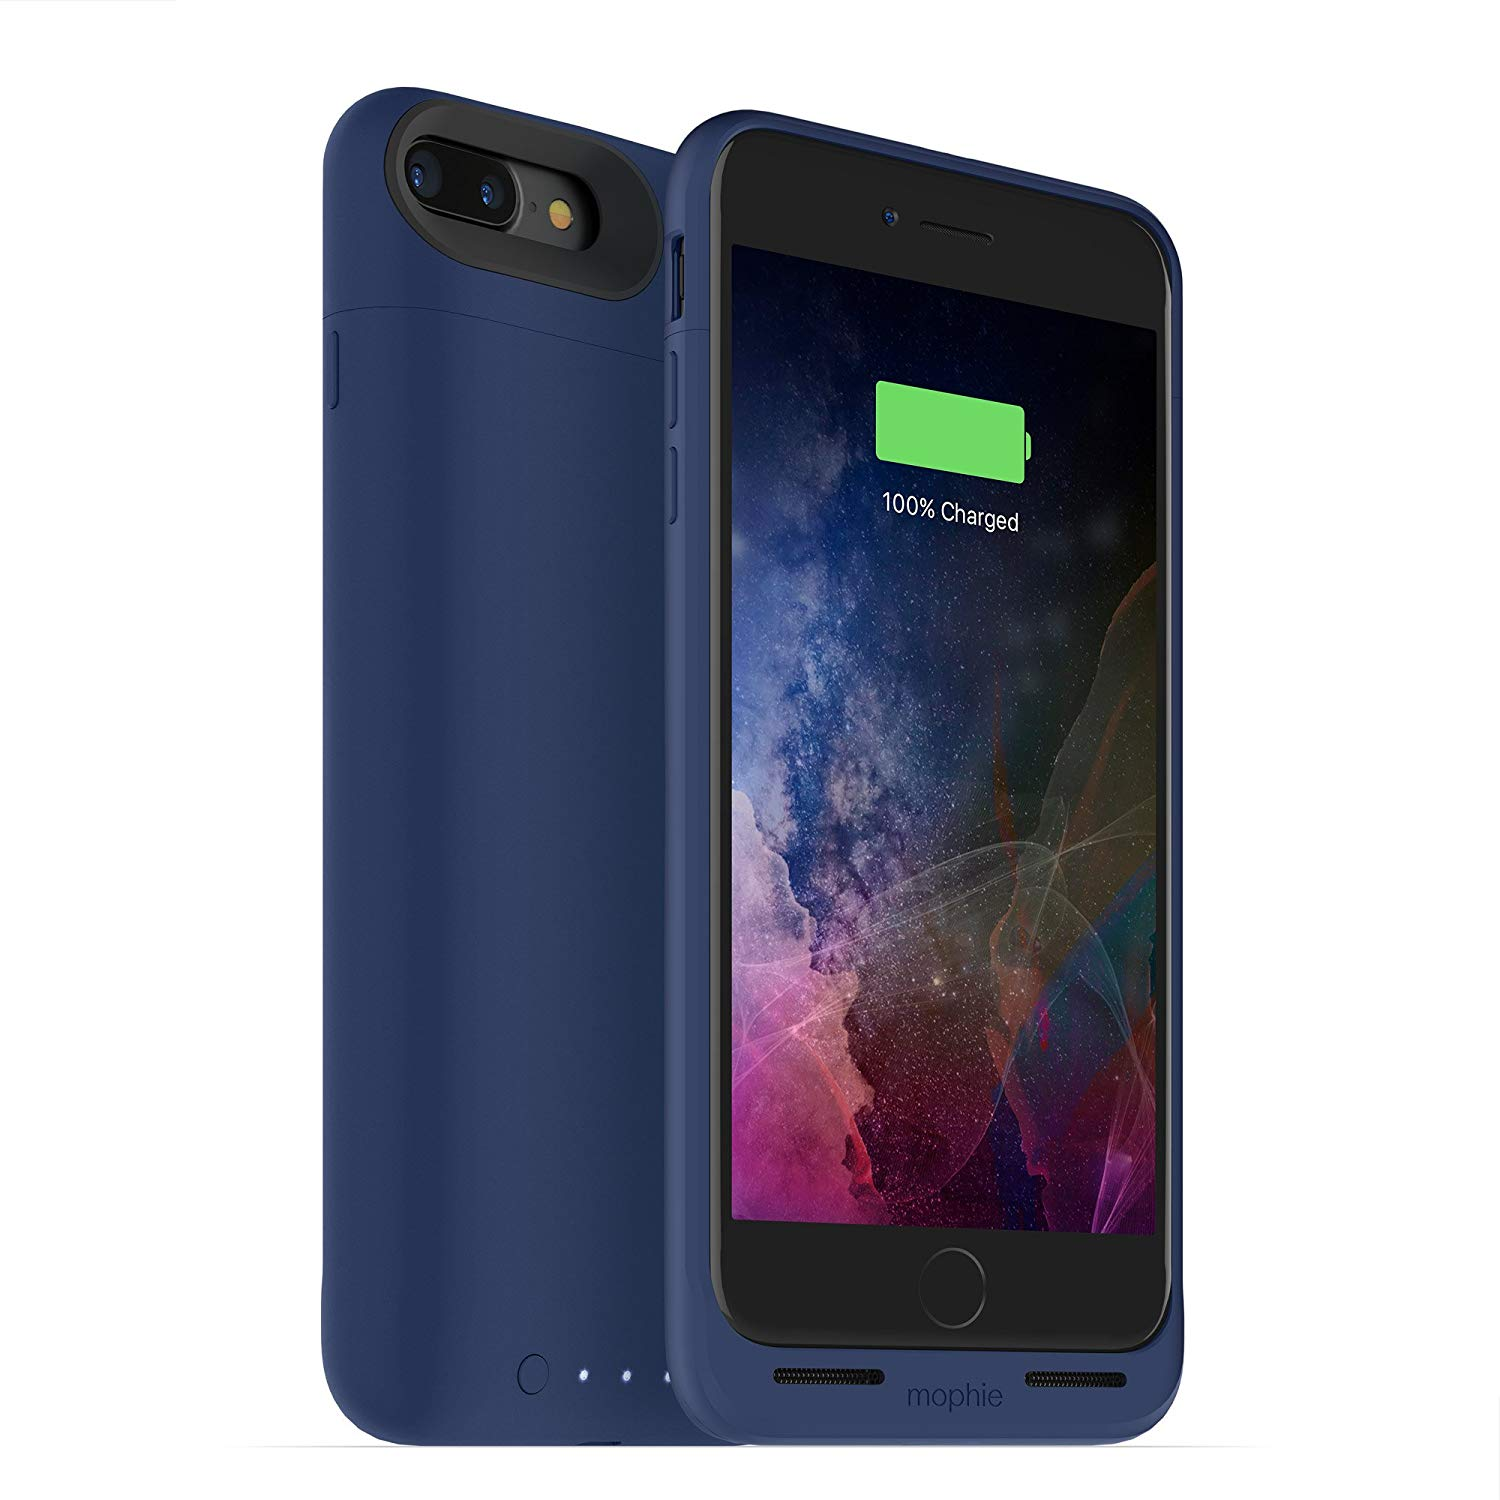 iPhone Case: mophie juice pack wireless - Charge Force Wireless Power - Wireless Charging Protective Battery Pack Case for iPhone 7 Plus – Blue